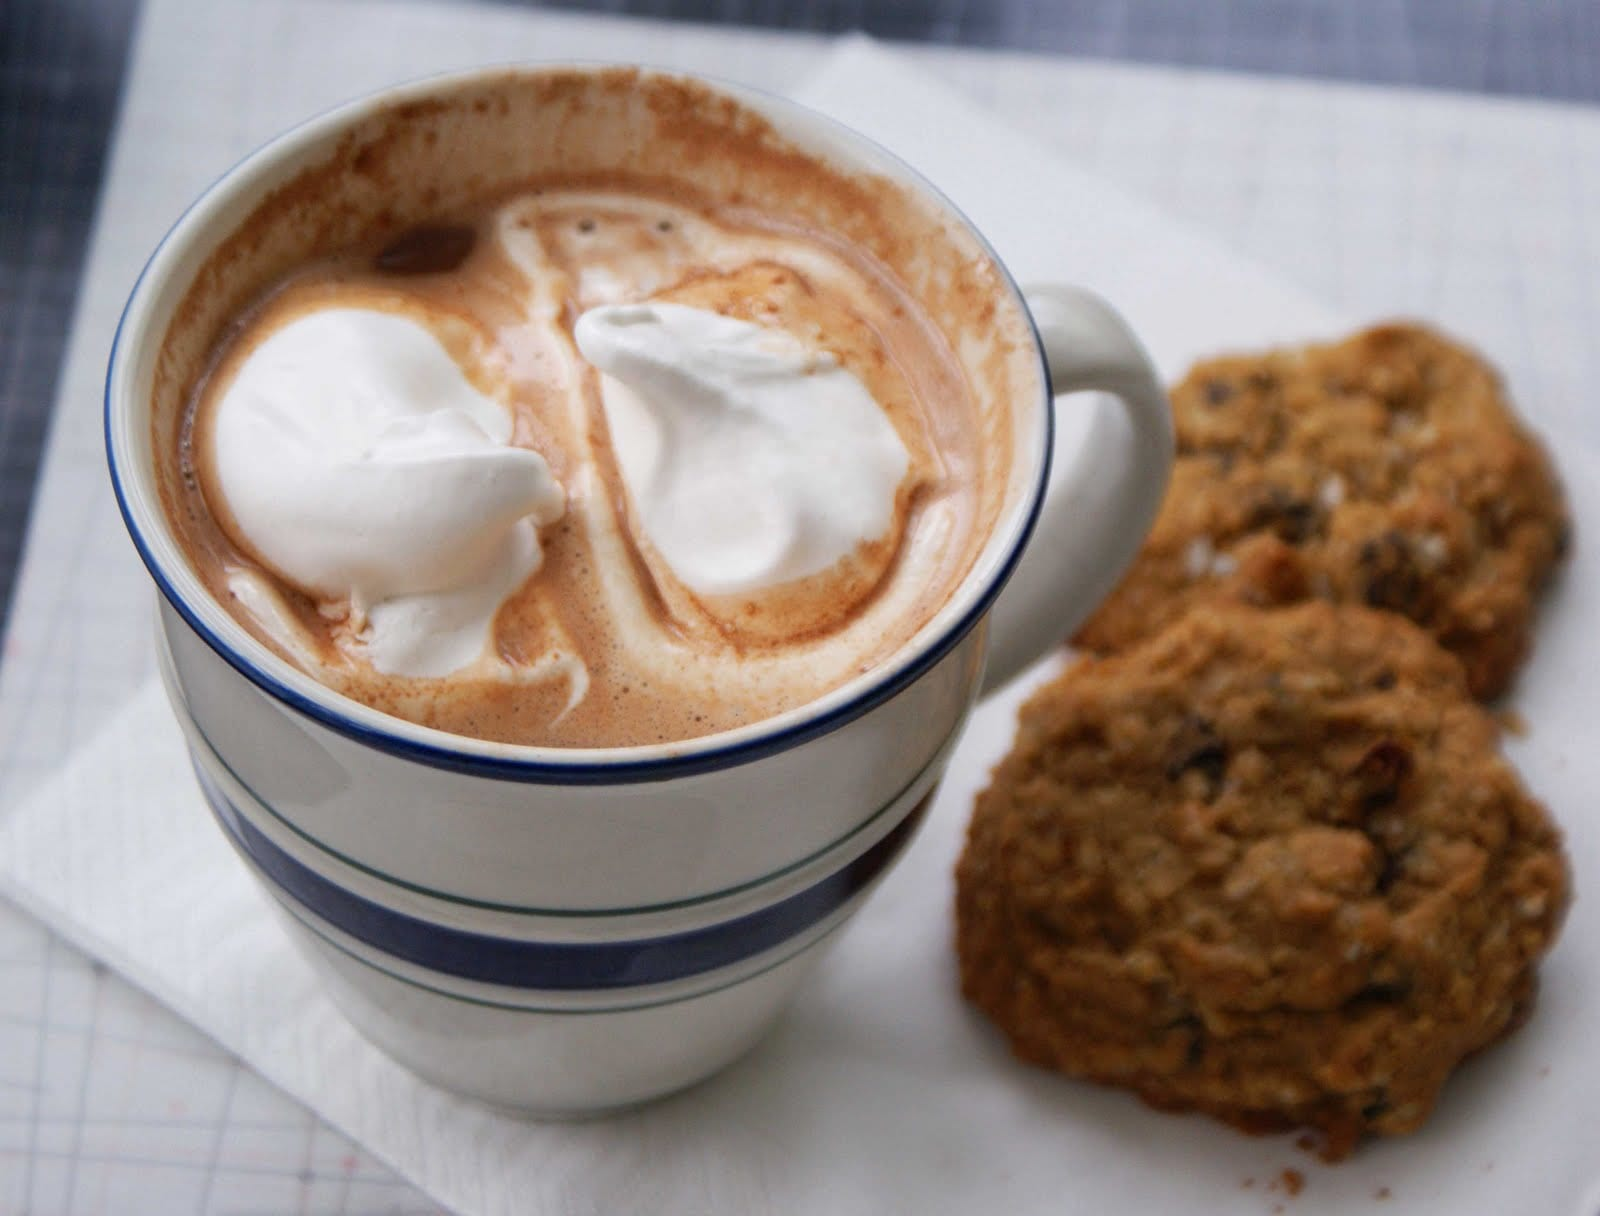 Hot-chocolate-and-cookies | York International